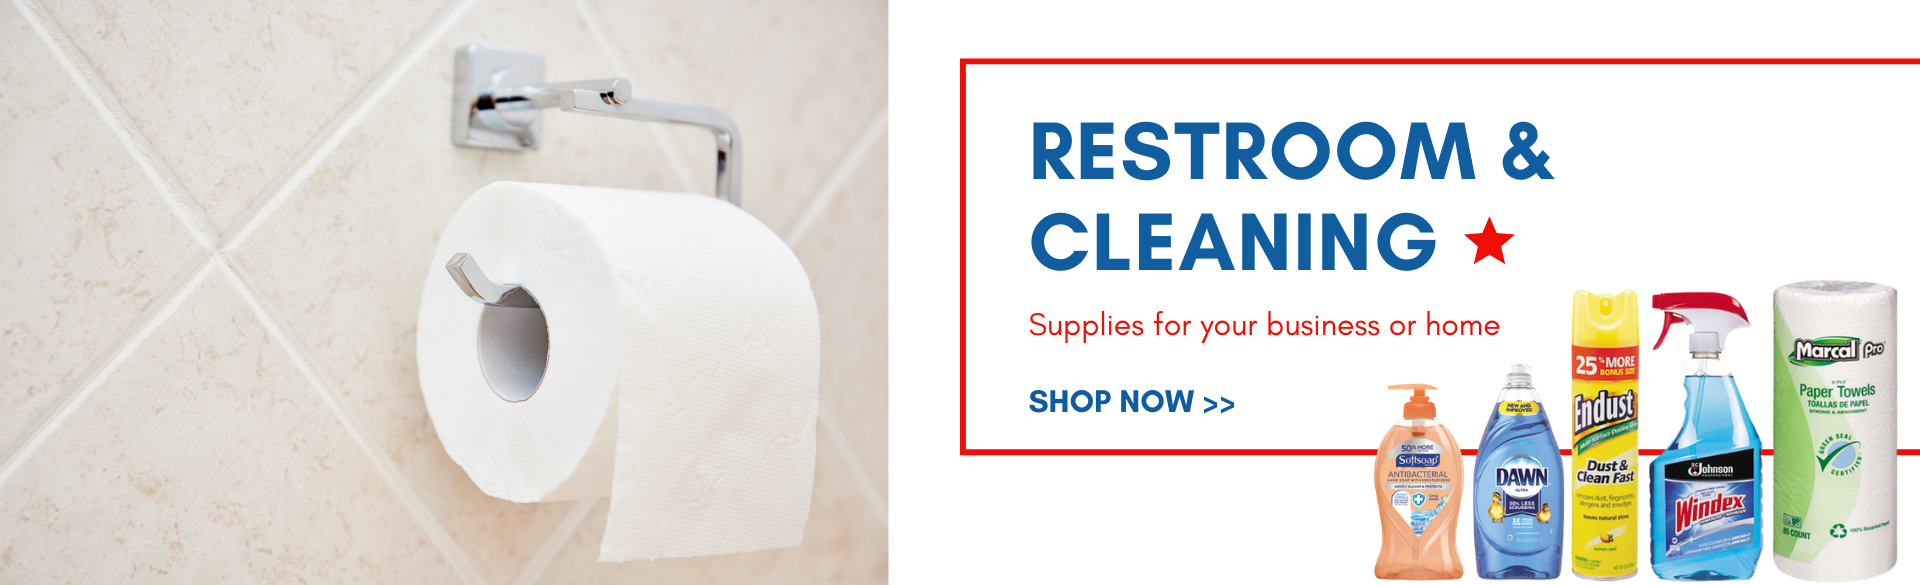 Buy restroom and cleaning supplies at US Casehouse